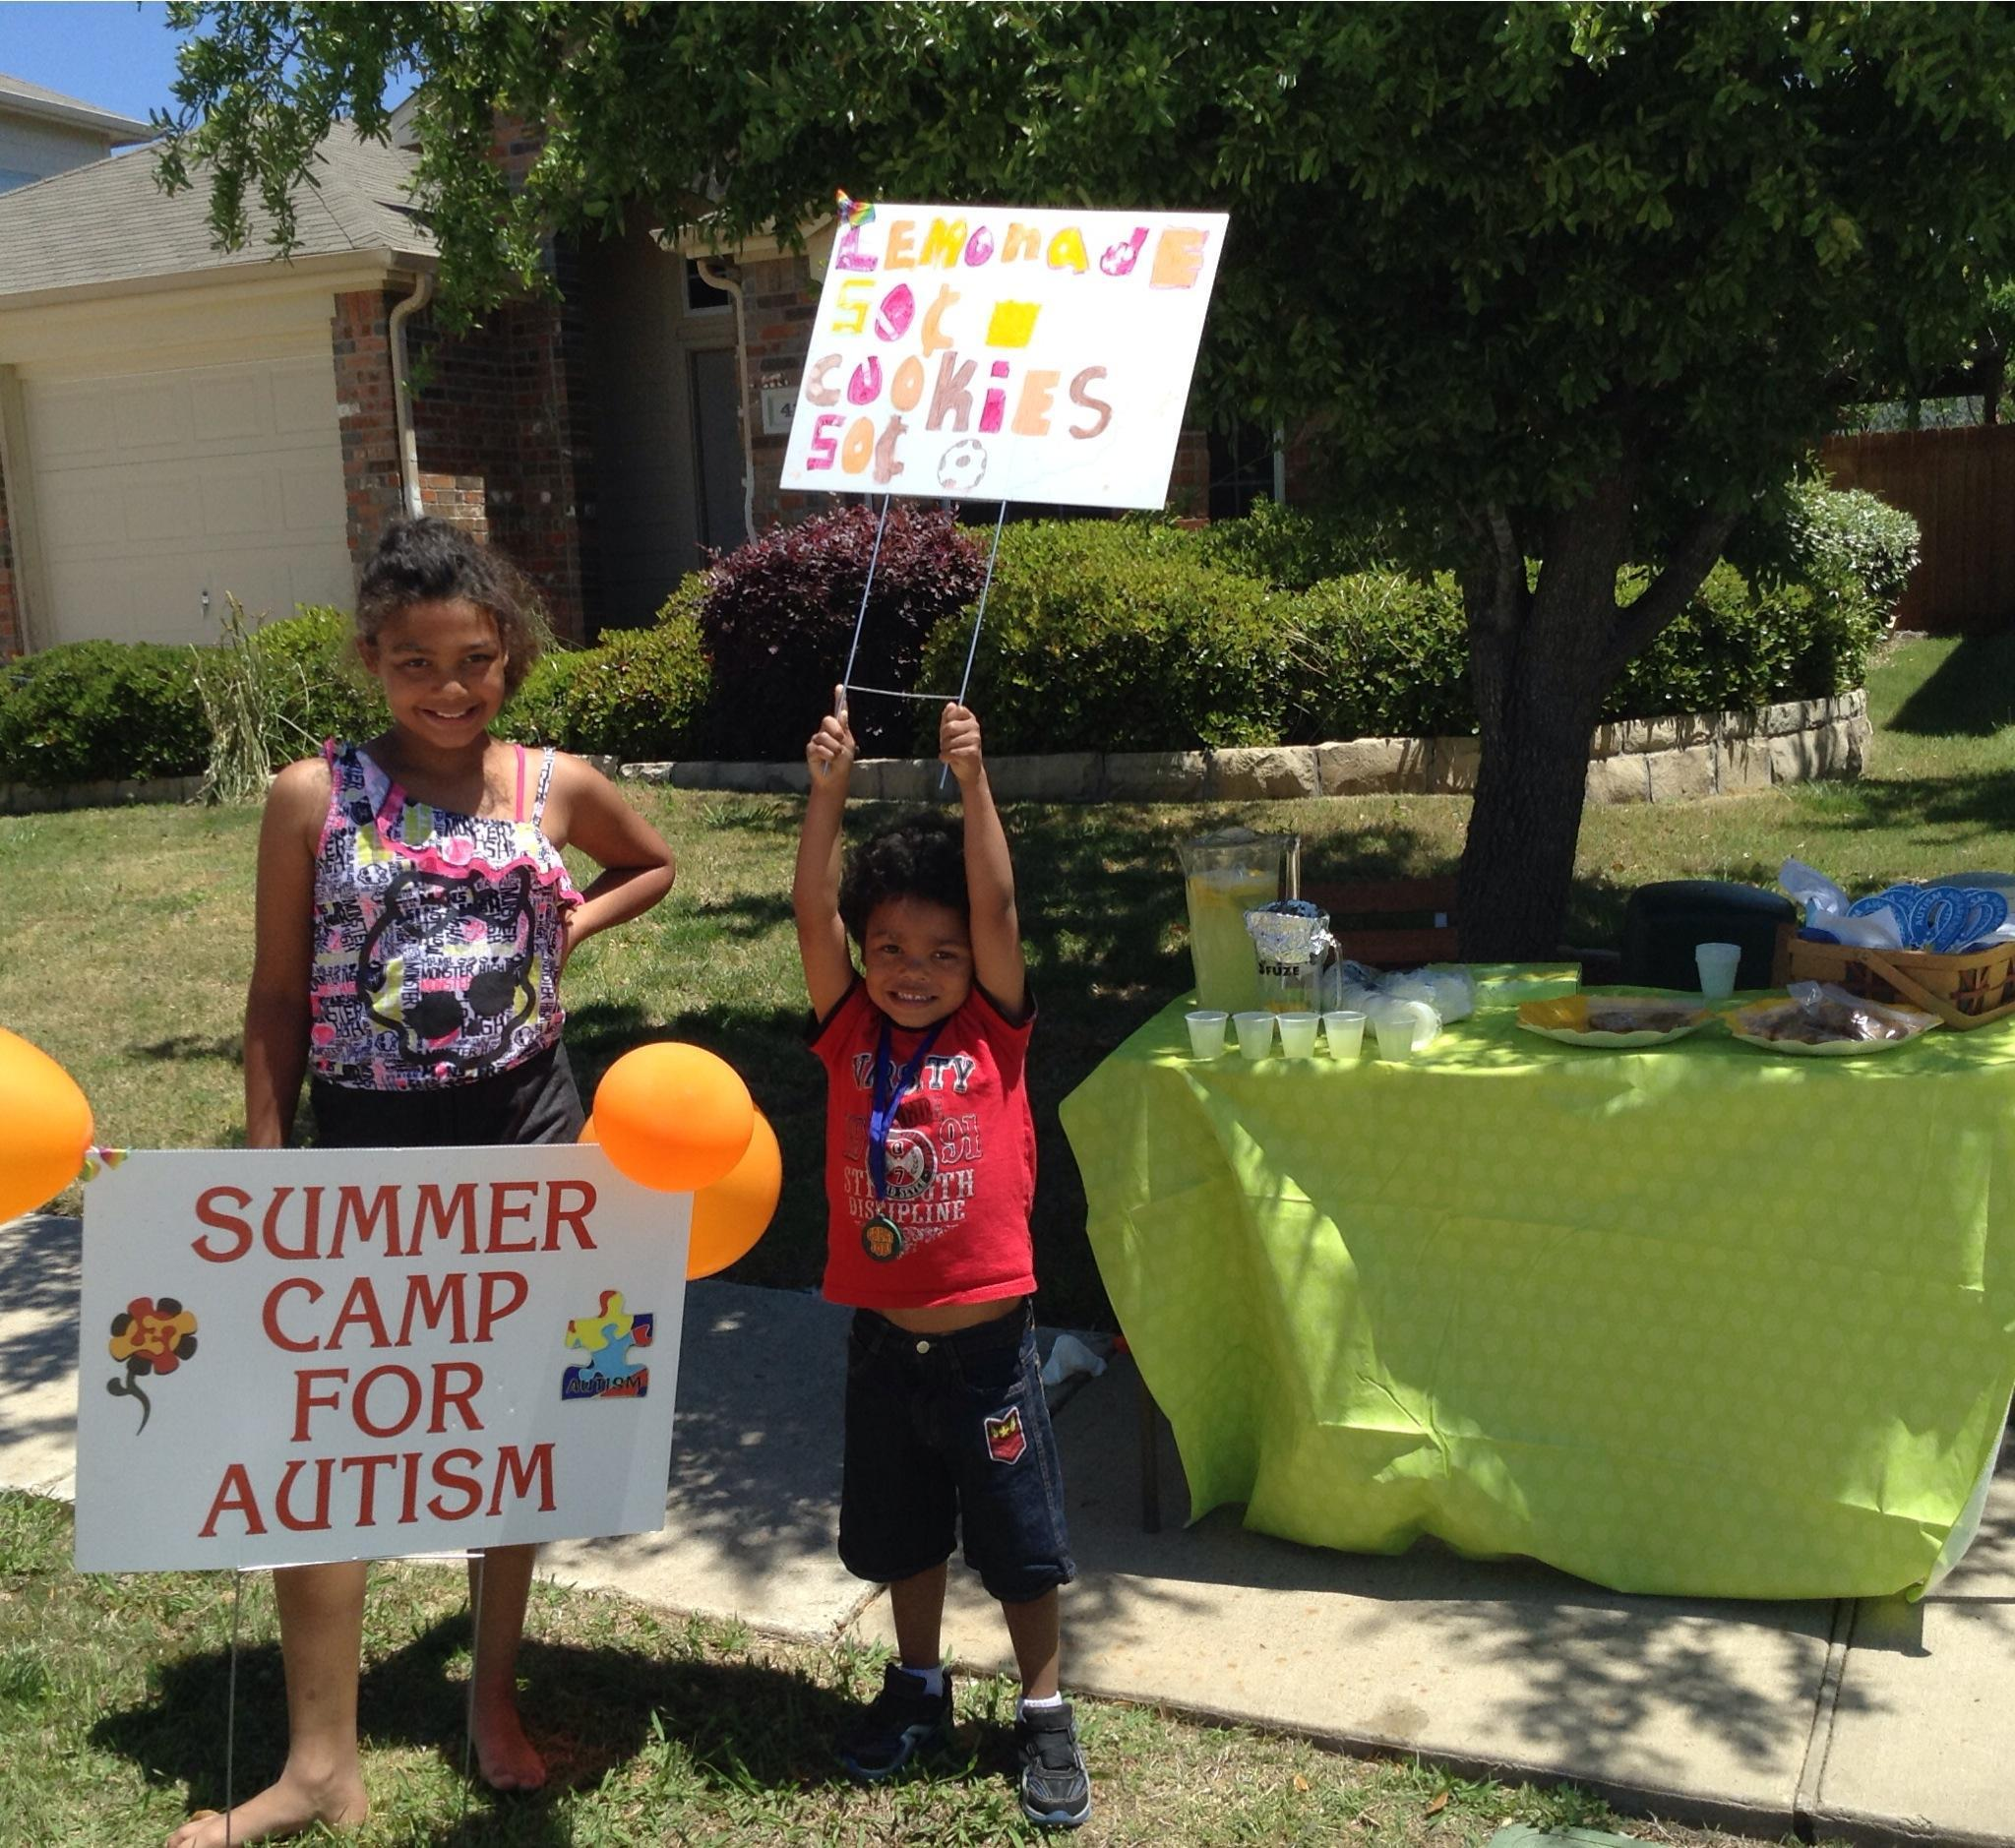 Summer Camp For Autism